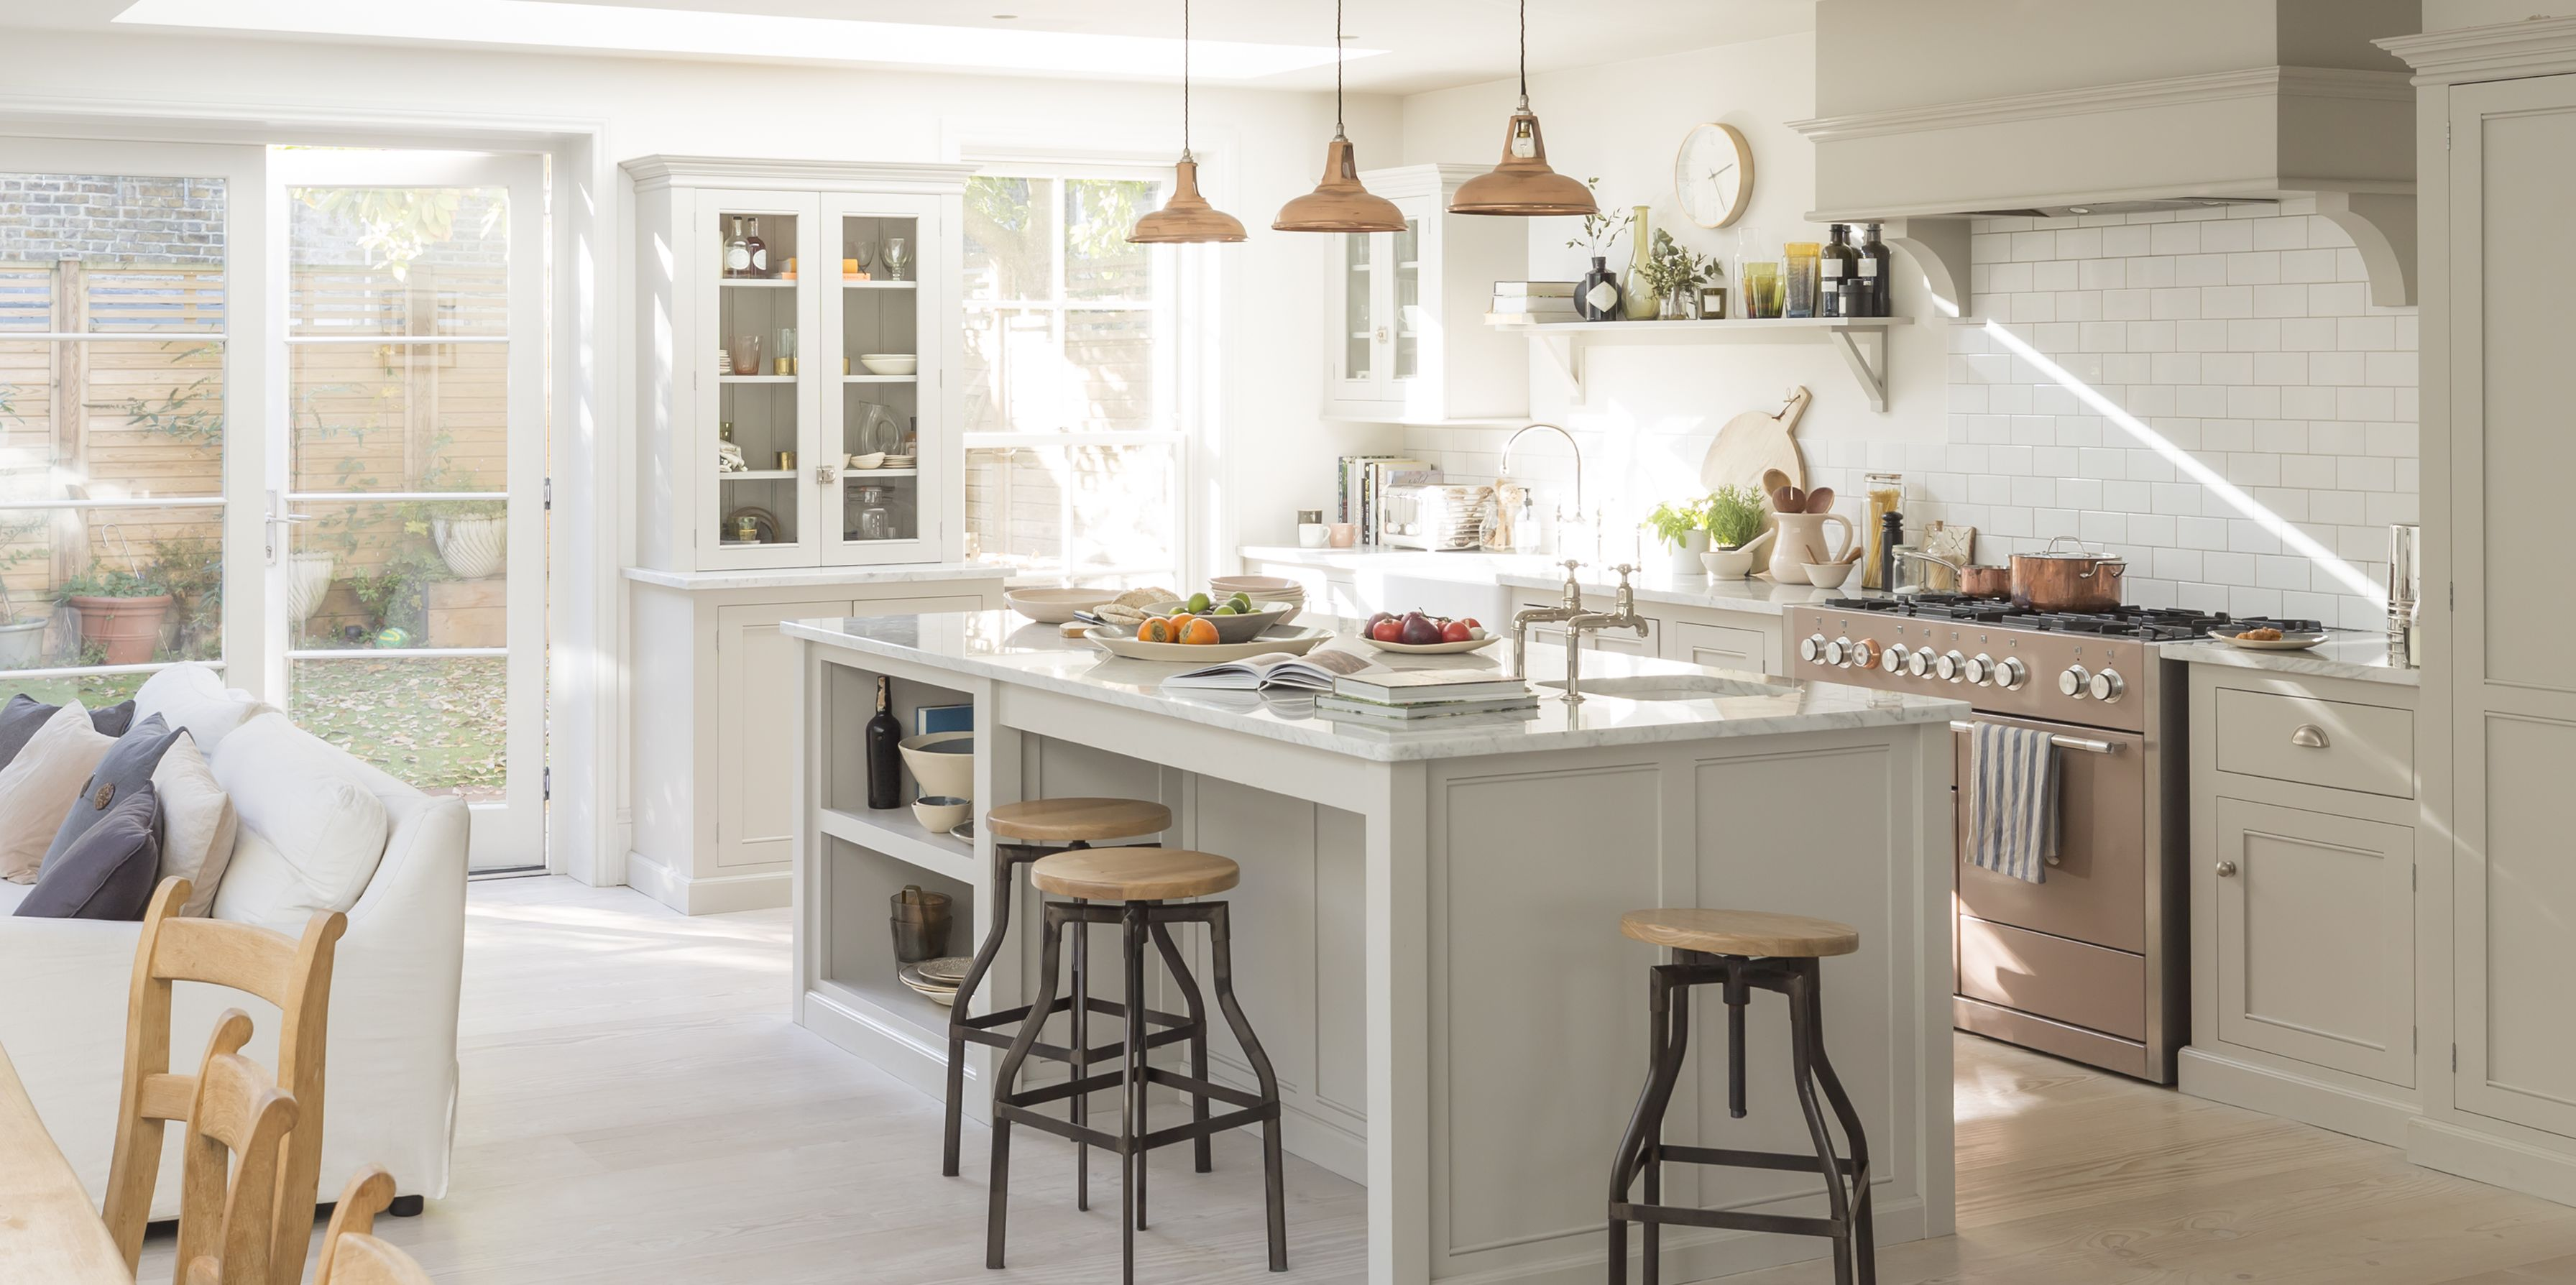 5 Cheap Kitchen Updates That Will Transform A Tired Space Budget